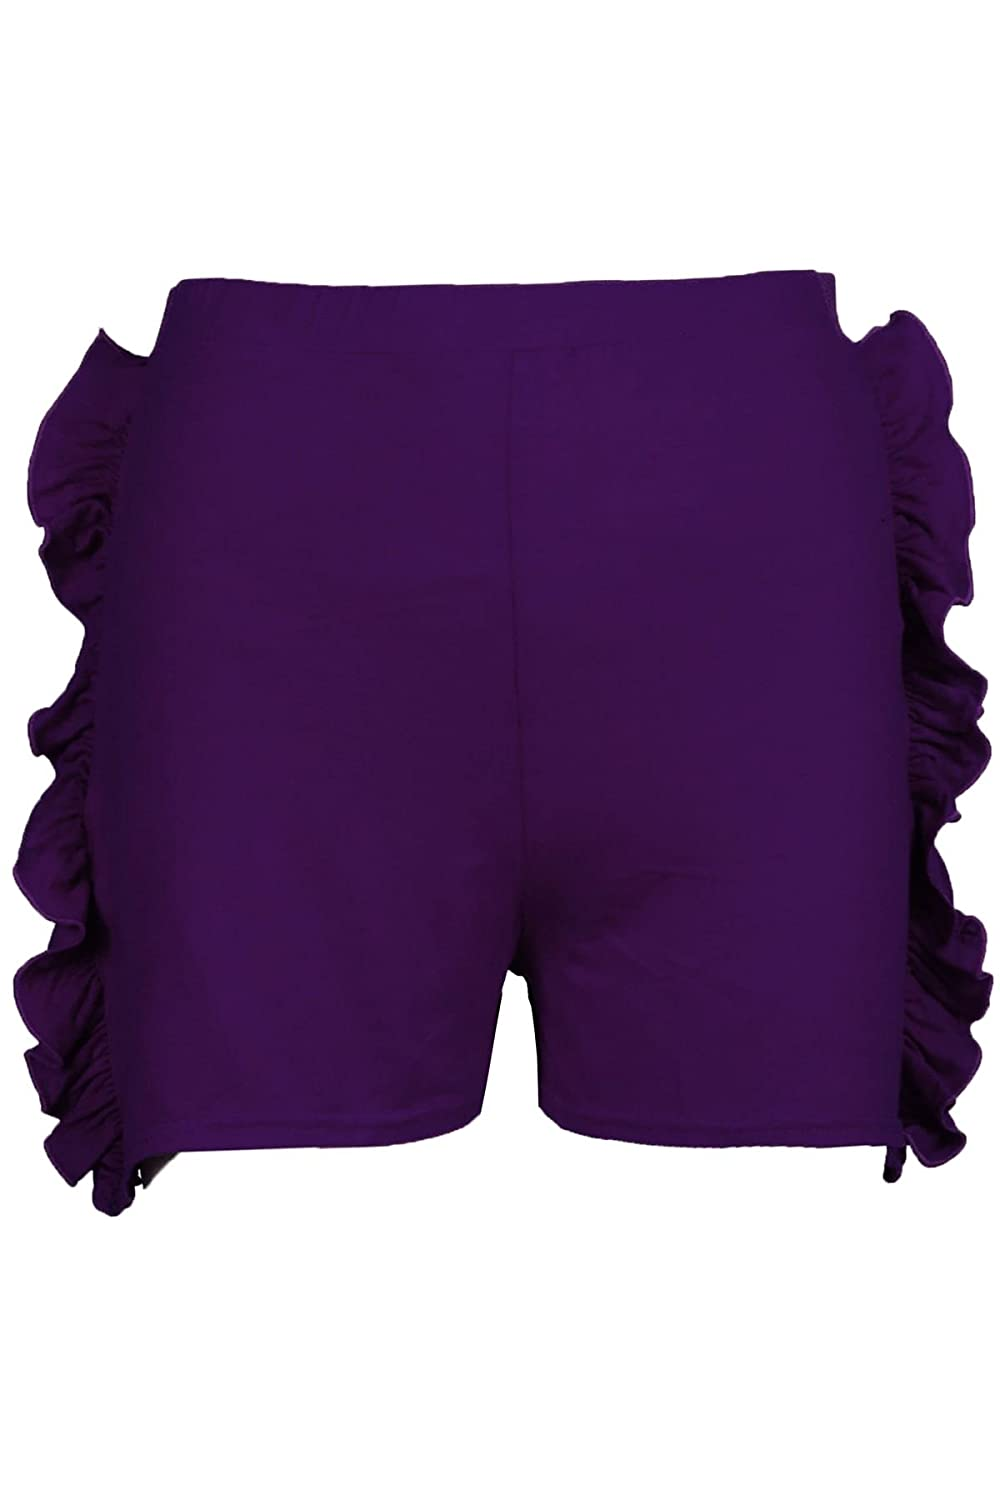 Be Jealous Childrens Girls Casual High Waisted Side Ruffle Peplum Frill Shorts